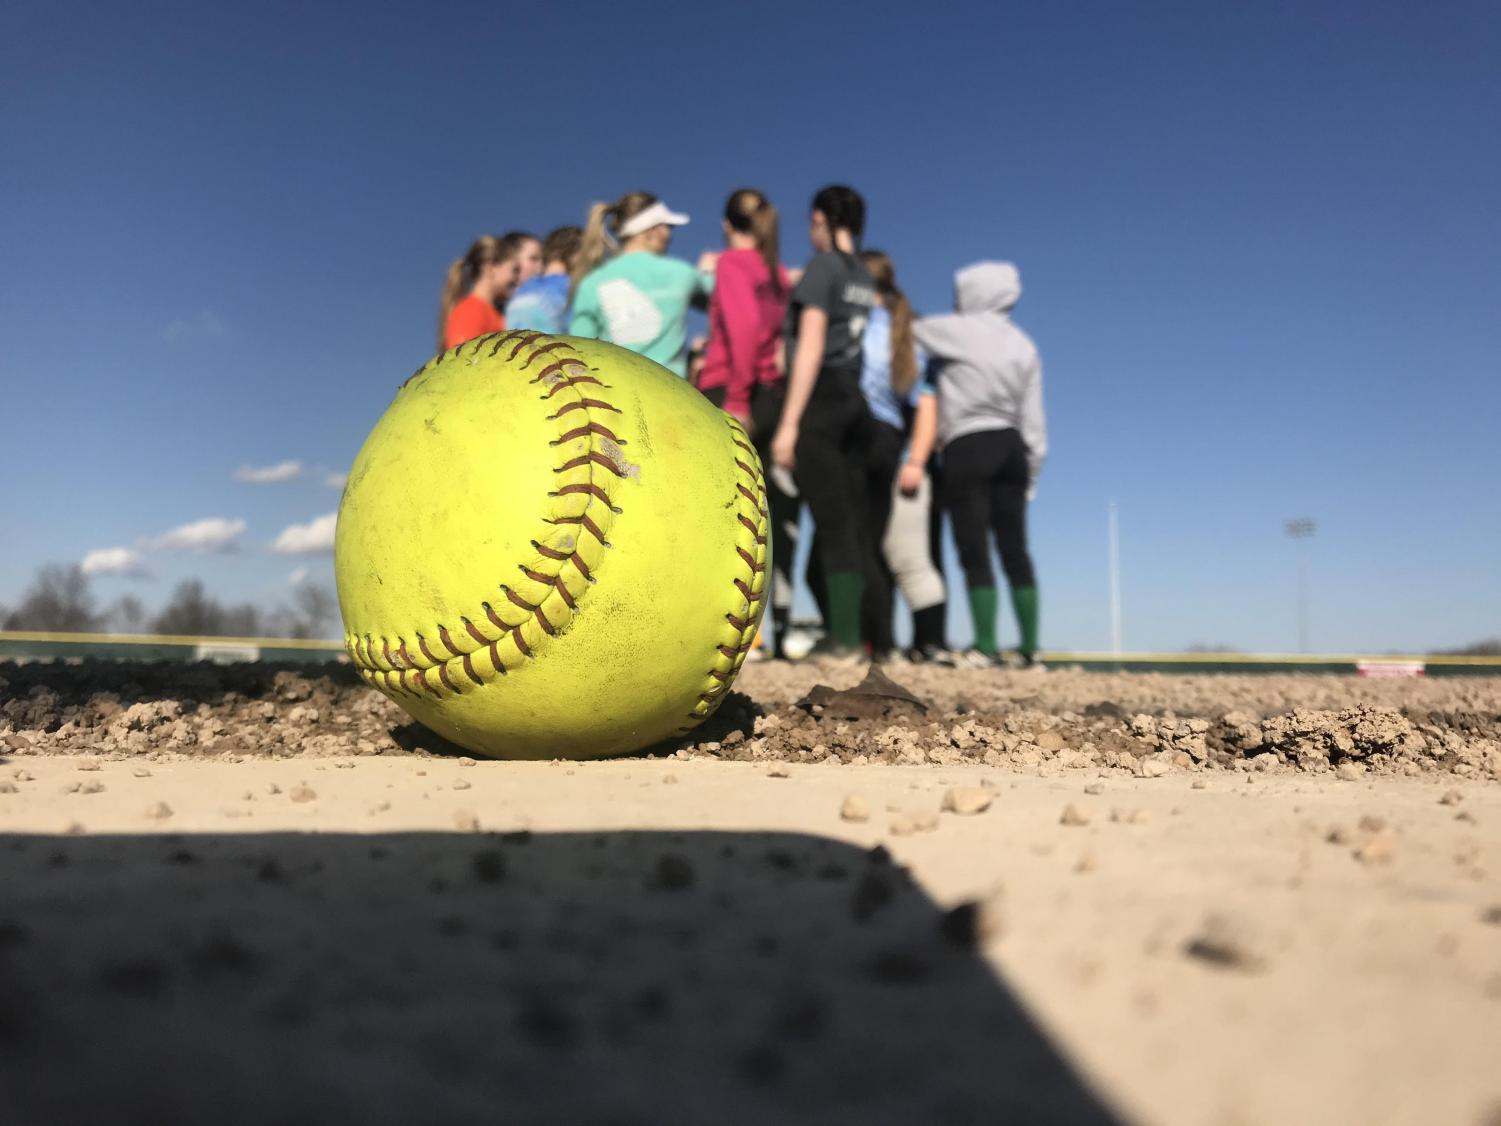 Hey batter batter swing! Meridian softball season started February 26, and the team was moved down from Class 2A to Class 1A this season. Due to the changes in ranking, the Meridian coaches and players will work toward their goal of making it to state.